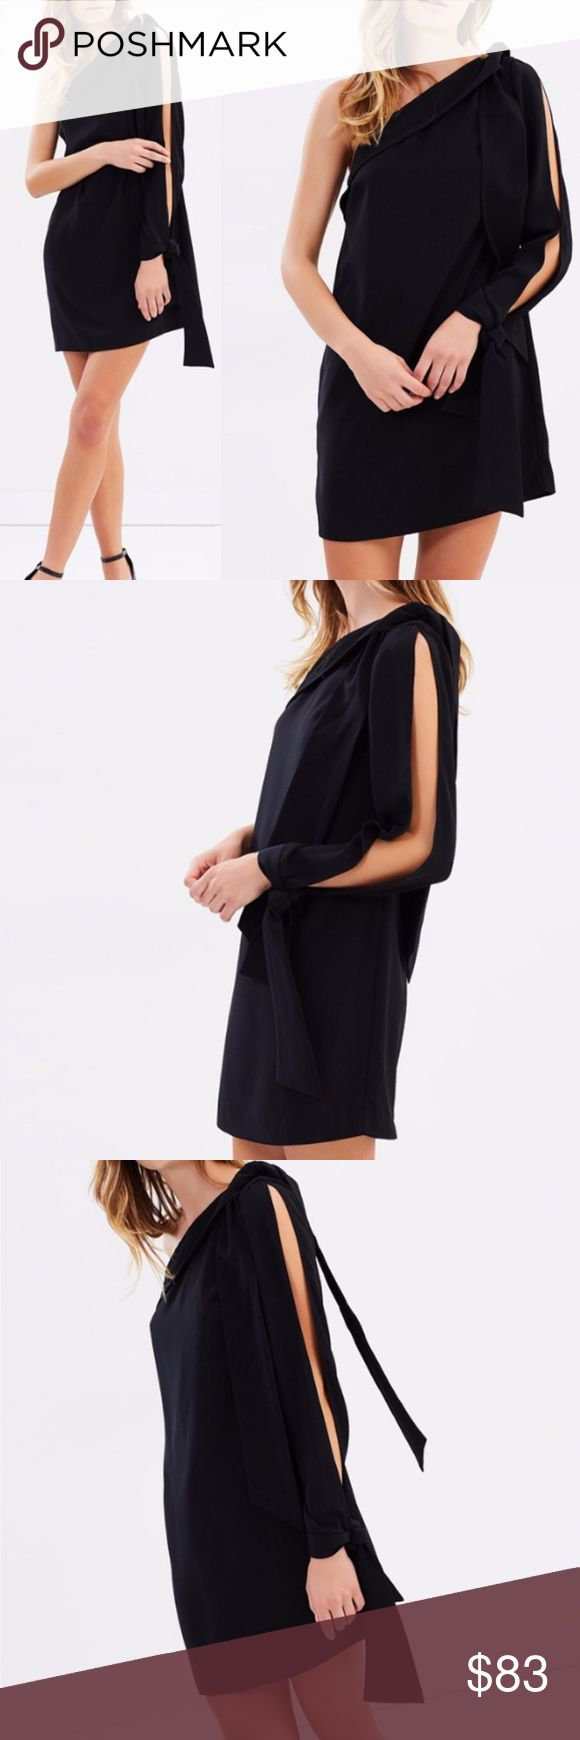 NWOT Keepsake Black Mini Dress Boxy One-shoulder New without tag Keepsake the label  Putting a contemporary spin on the little black dress,  Keepsake the Label deliver the All Tied Up Dress.  Featuring a one-shoulder design, the single sleeve is split through the top.  - Length: 82cm (size small)  - Boxy silhouette - Lightweight, woven fabric; lined - Black shade - One-shoulder design; fold-over neckline - Single split long sleeve Size S Main and lining 100% Polyester KEEPSAKE the Label…